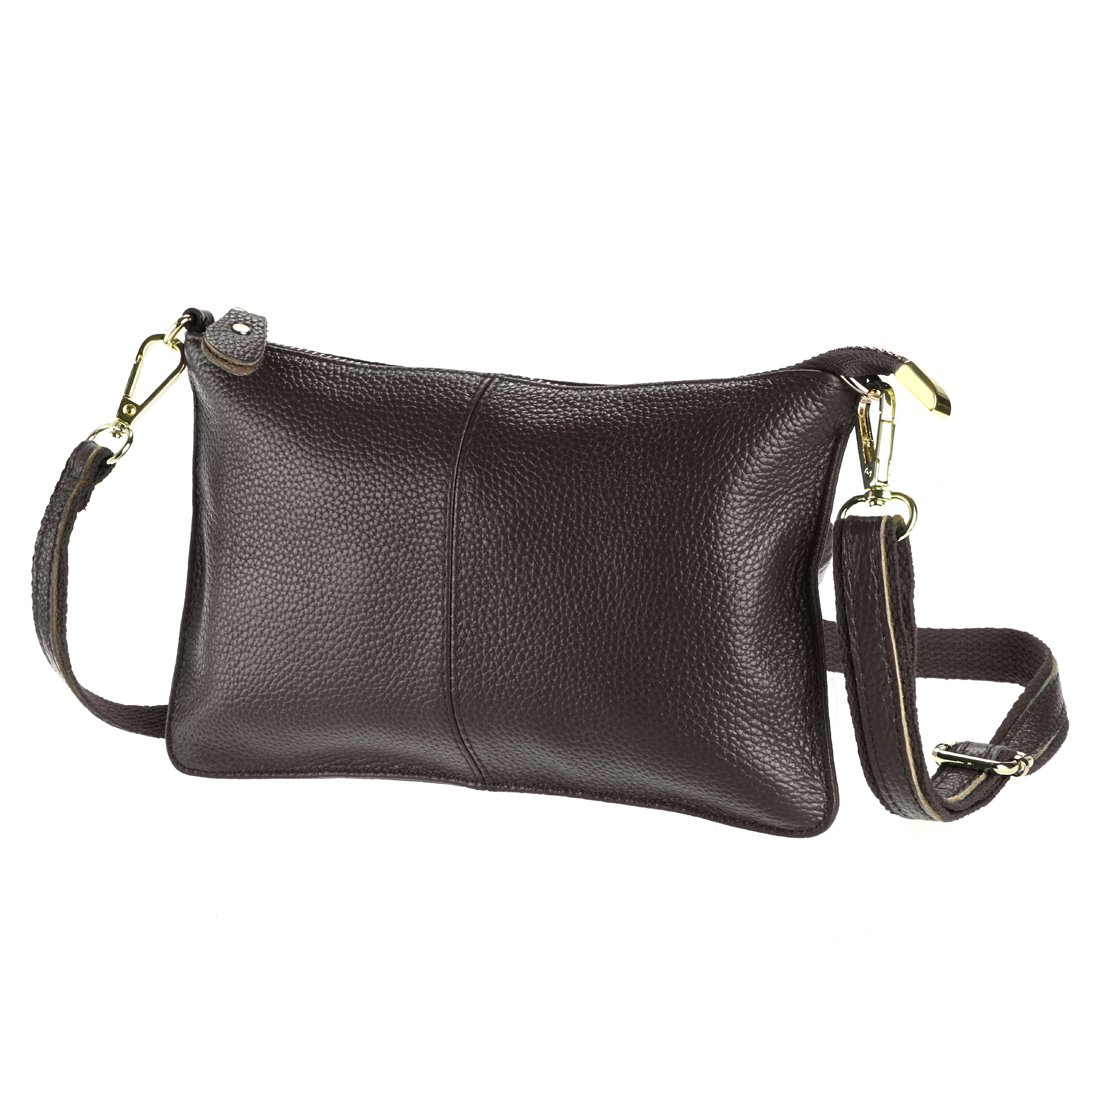 SEALINF Women's Cowhide Leather Clutch Handbag Small Shoulder Bag Purse (Coffee)